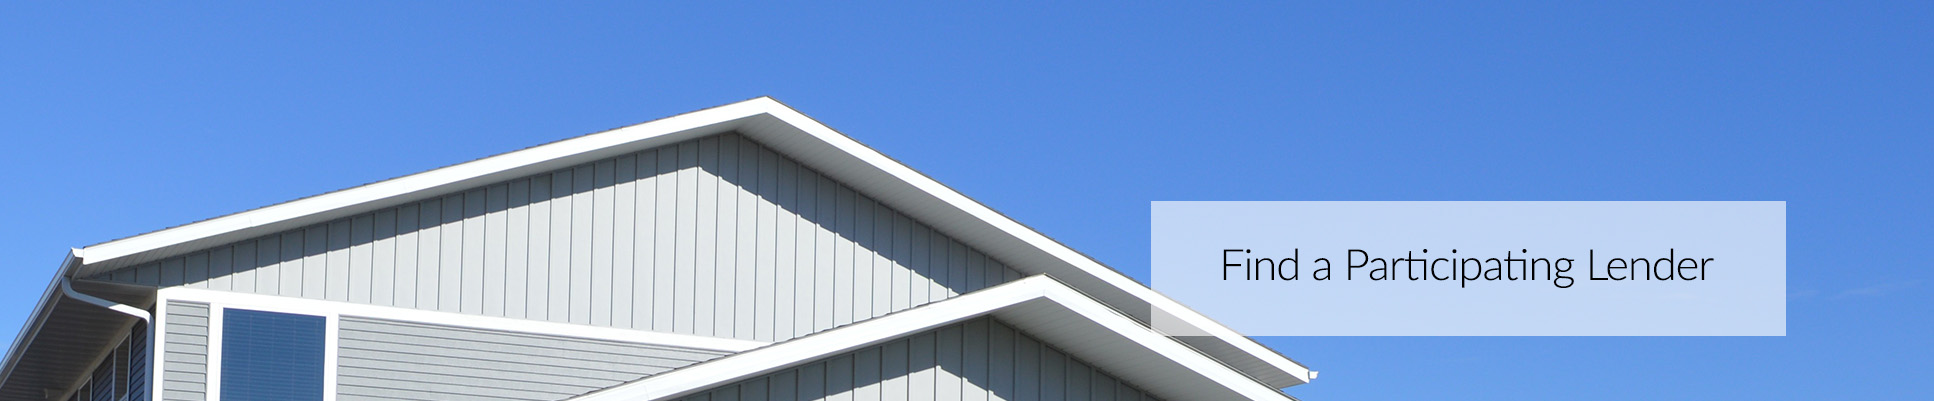 peaks of a gray house with blue sky